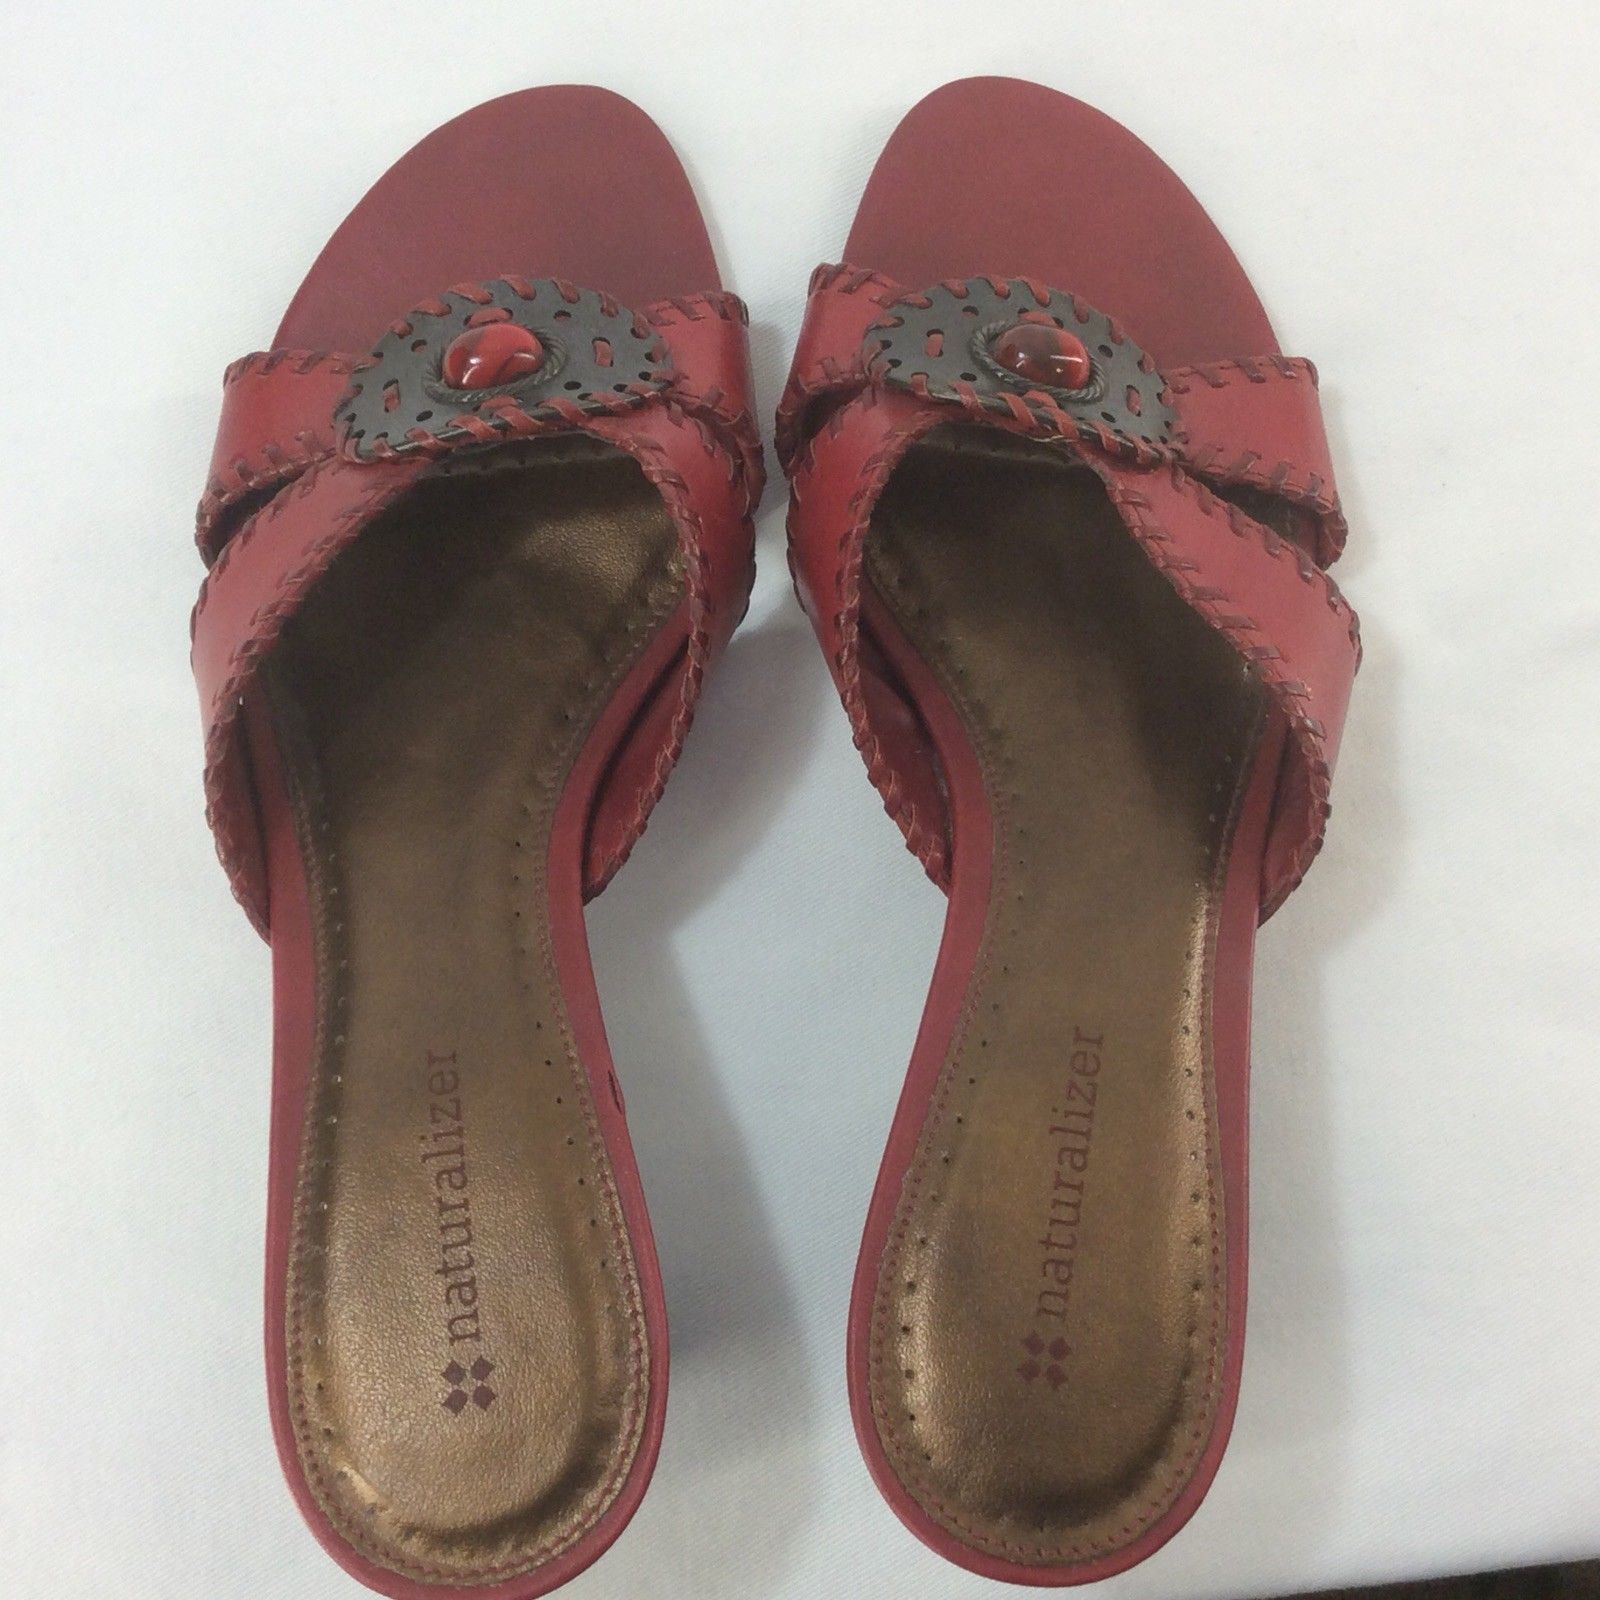 4e2b5bd59cc7 New Naturalizer Red Leather Strapless Mules Size 6N Made In Brazil Padded  Bed